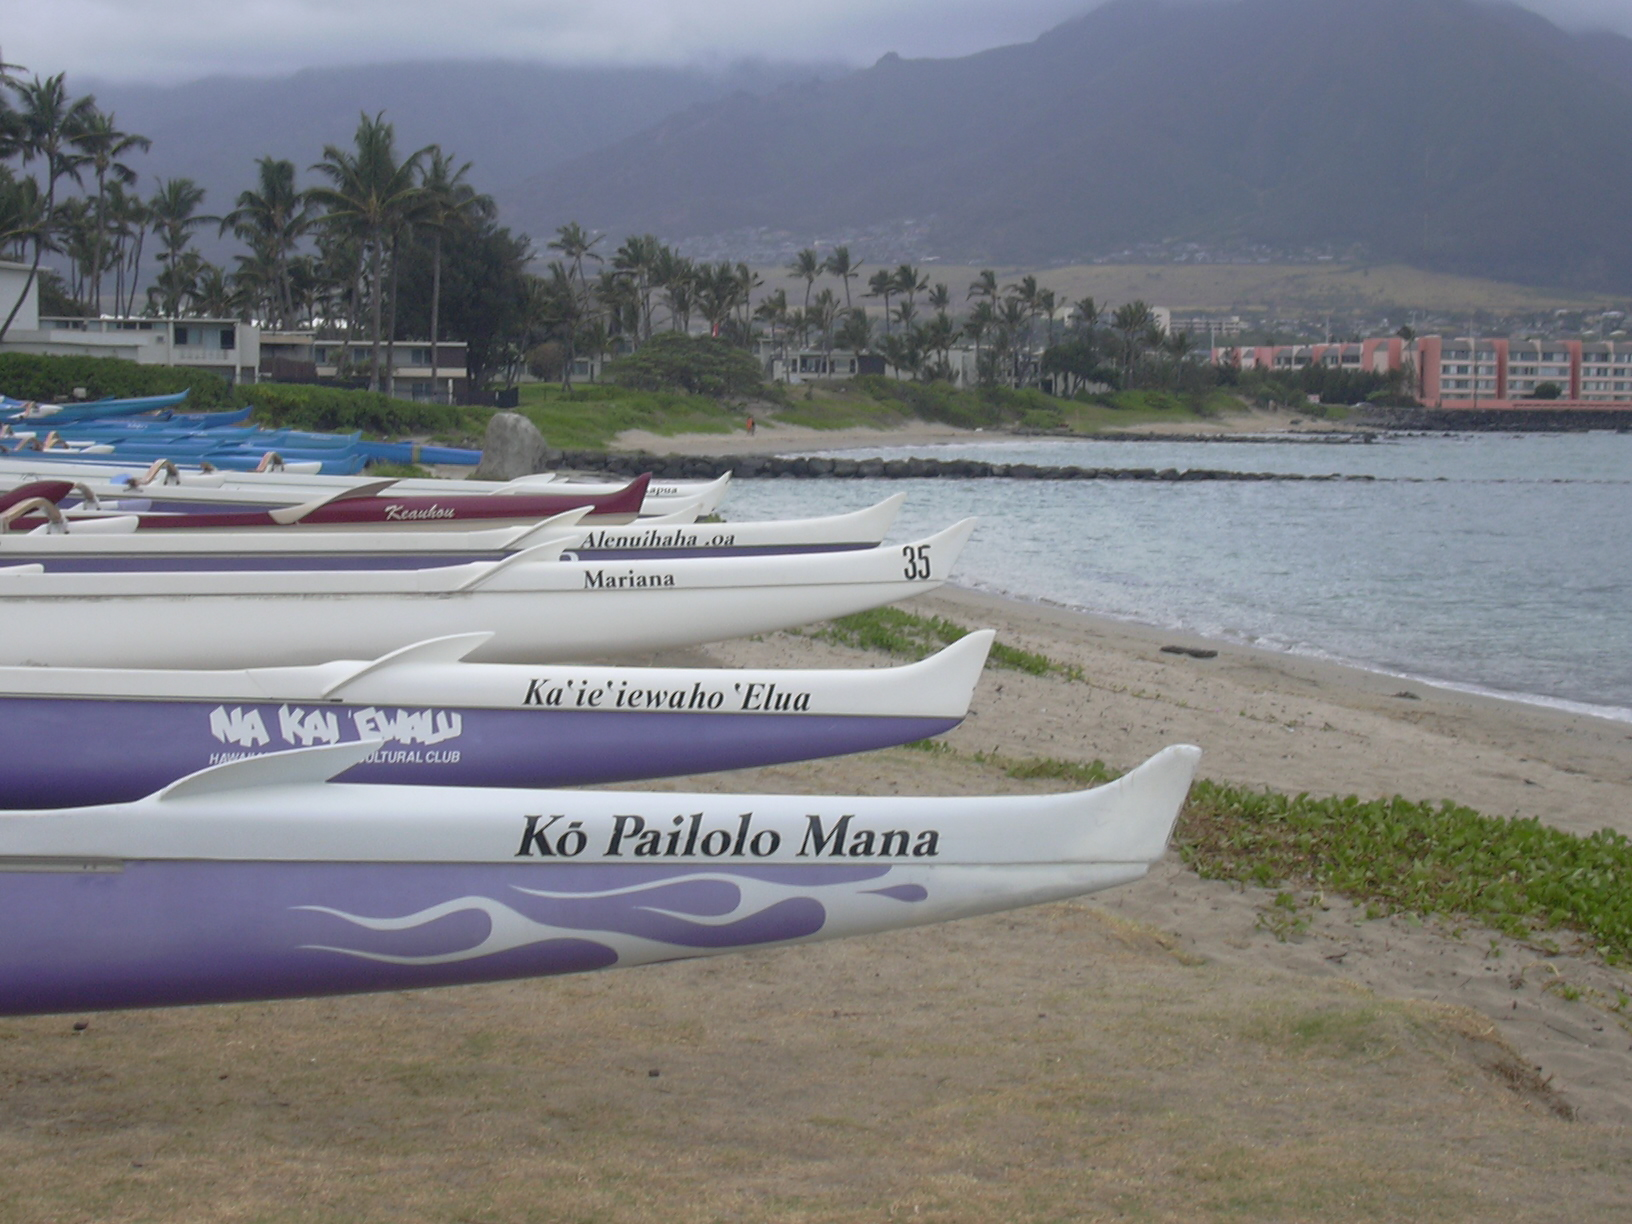 Canoes at Kahului Harbor